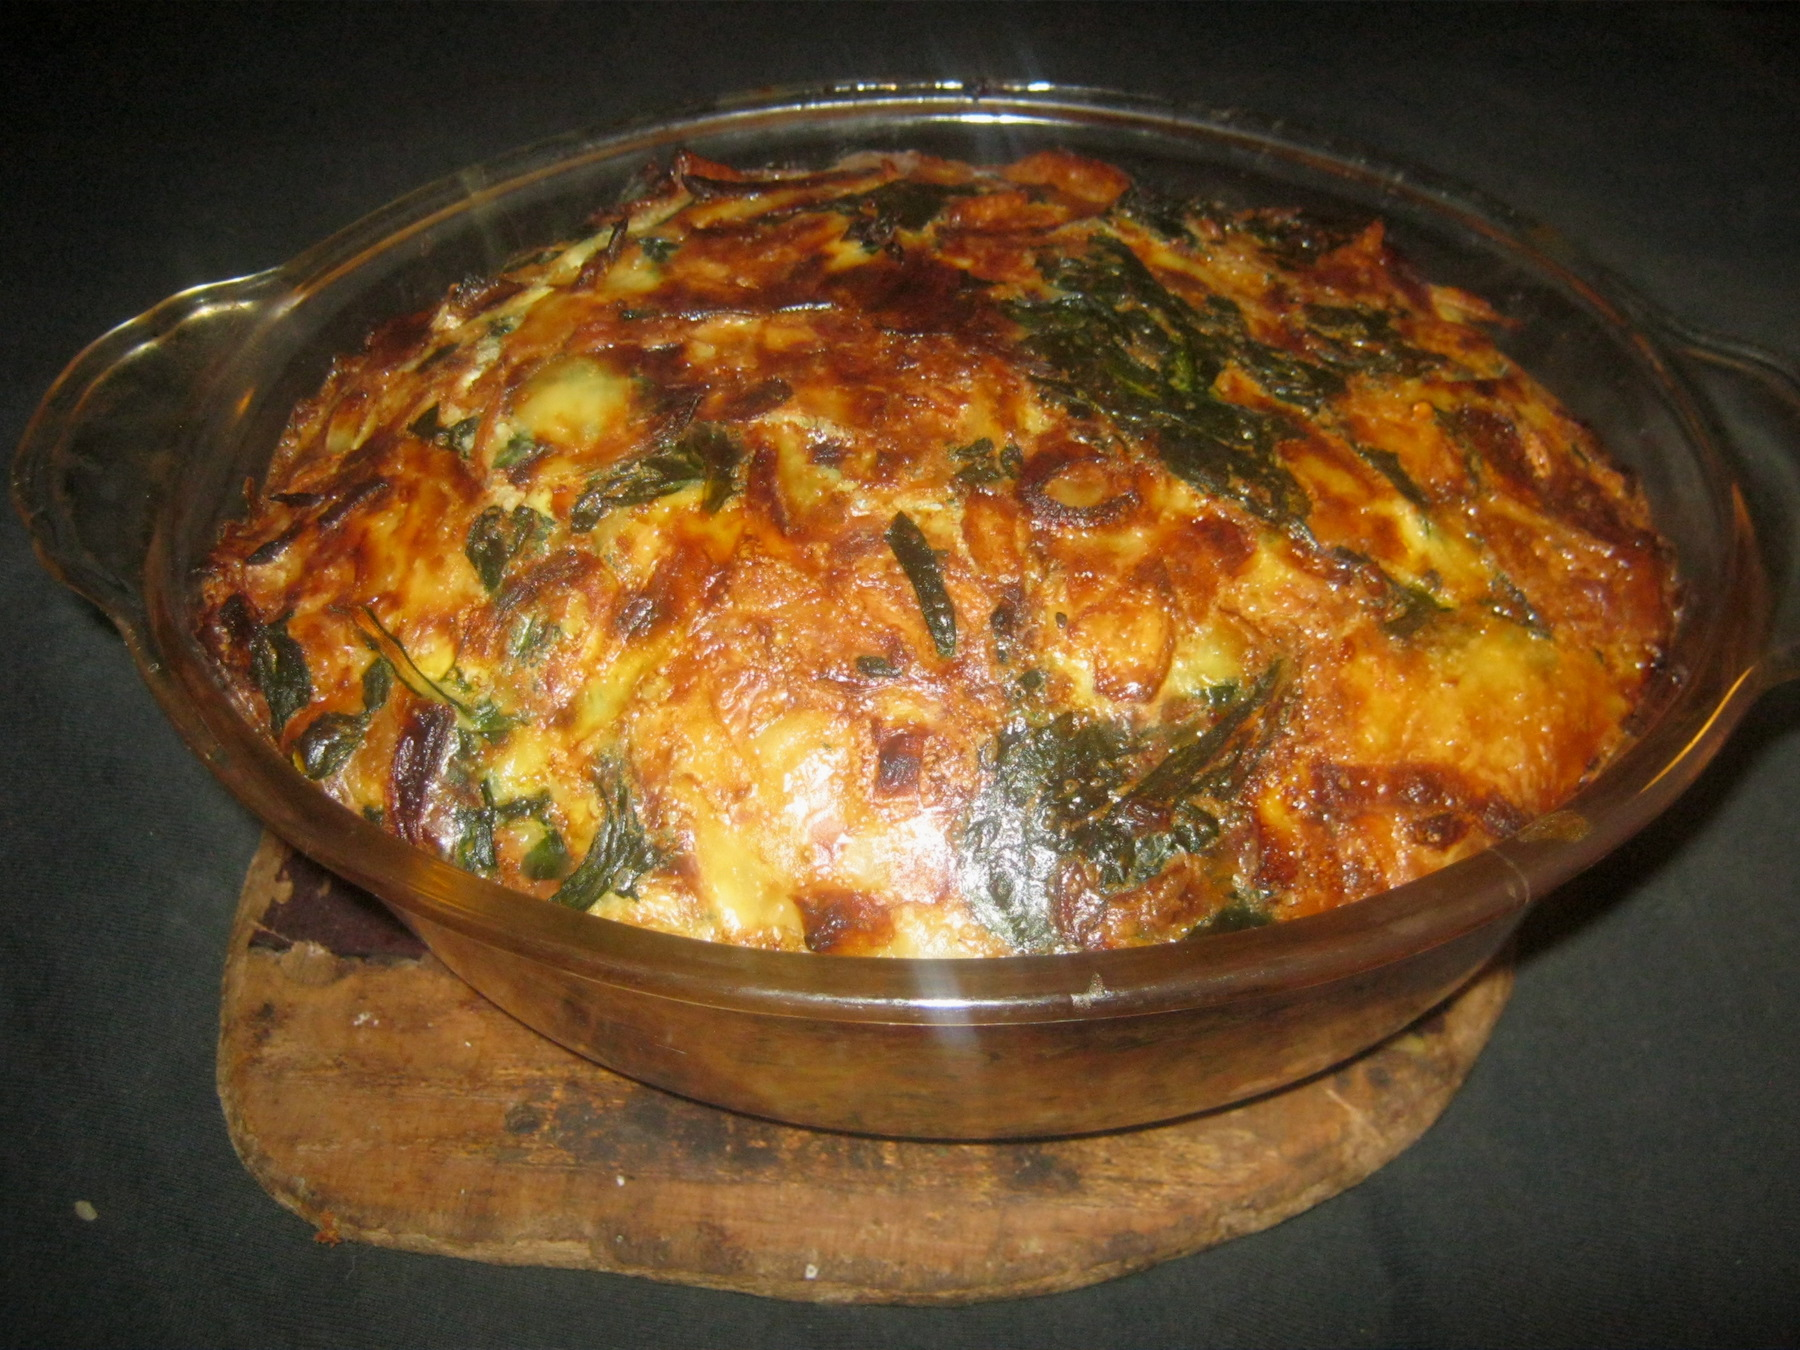 Spanish omelette with spinach  in a casserole dish